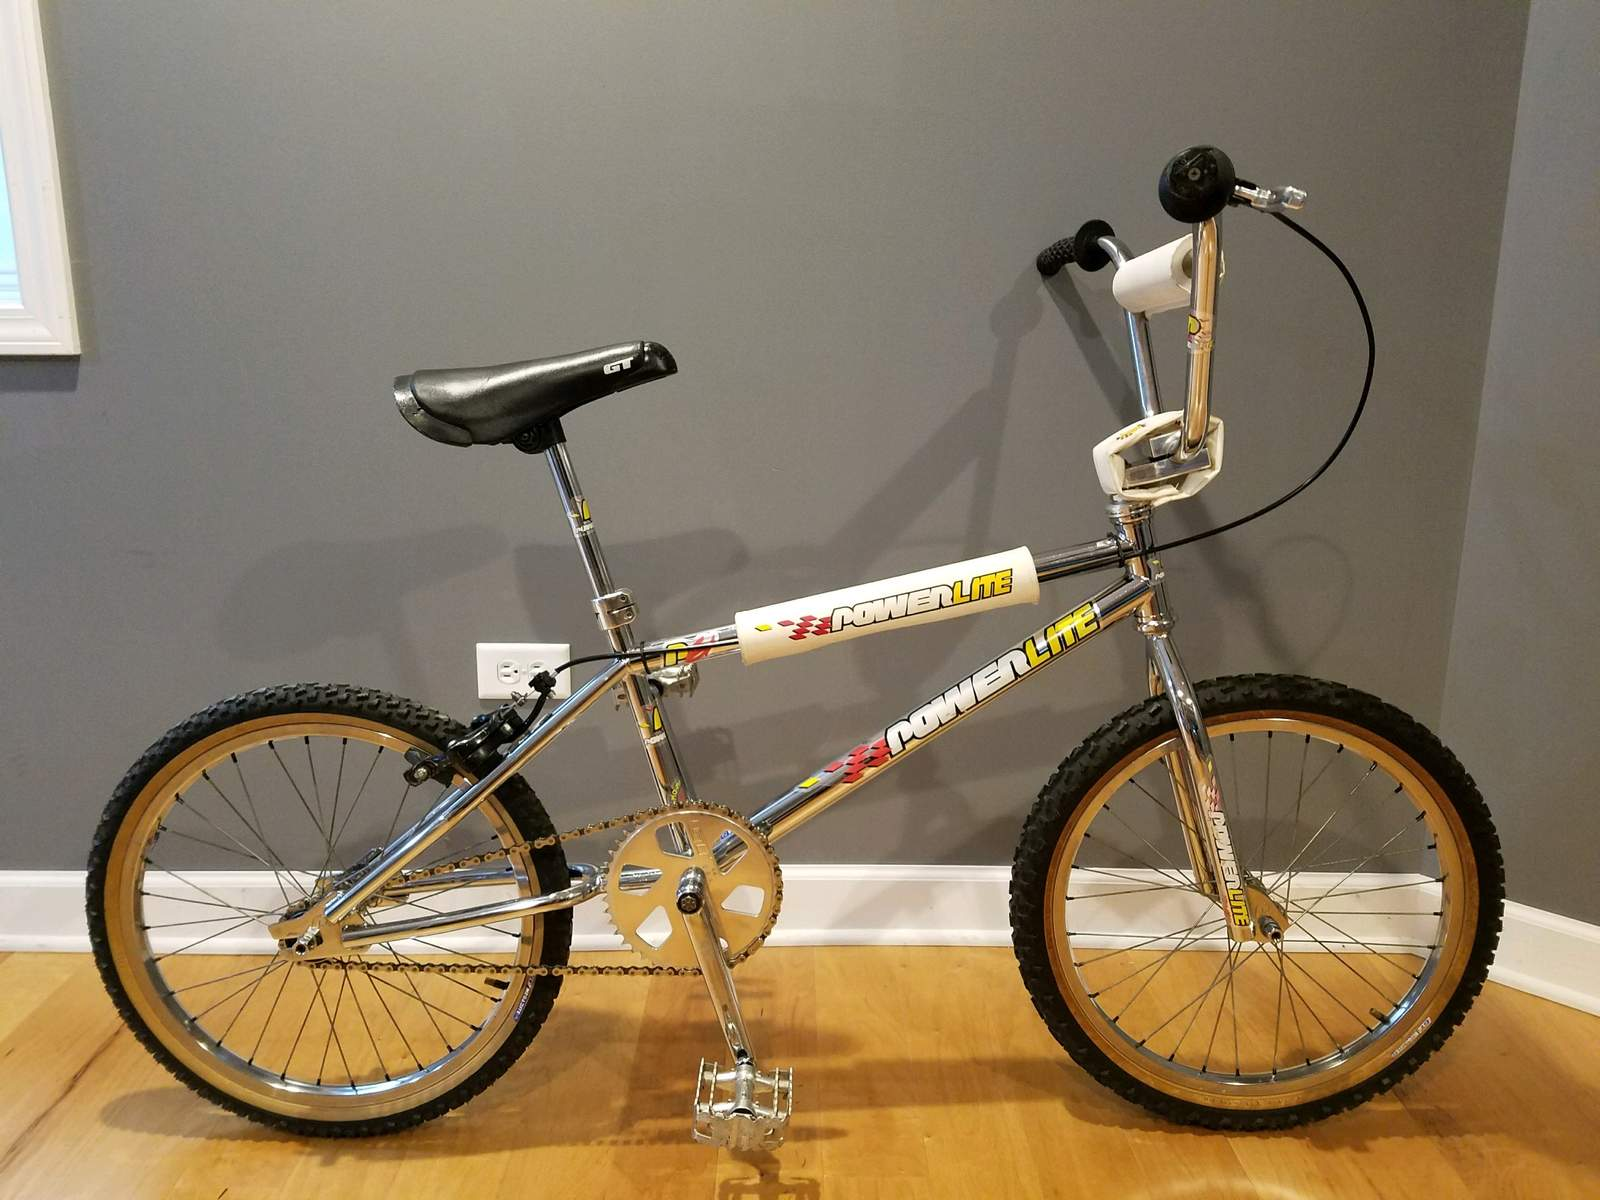 http://uploads.bmxmuseum.com/user-images/40462/5185459ecdf94a8.jpeg